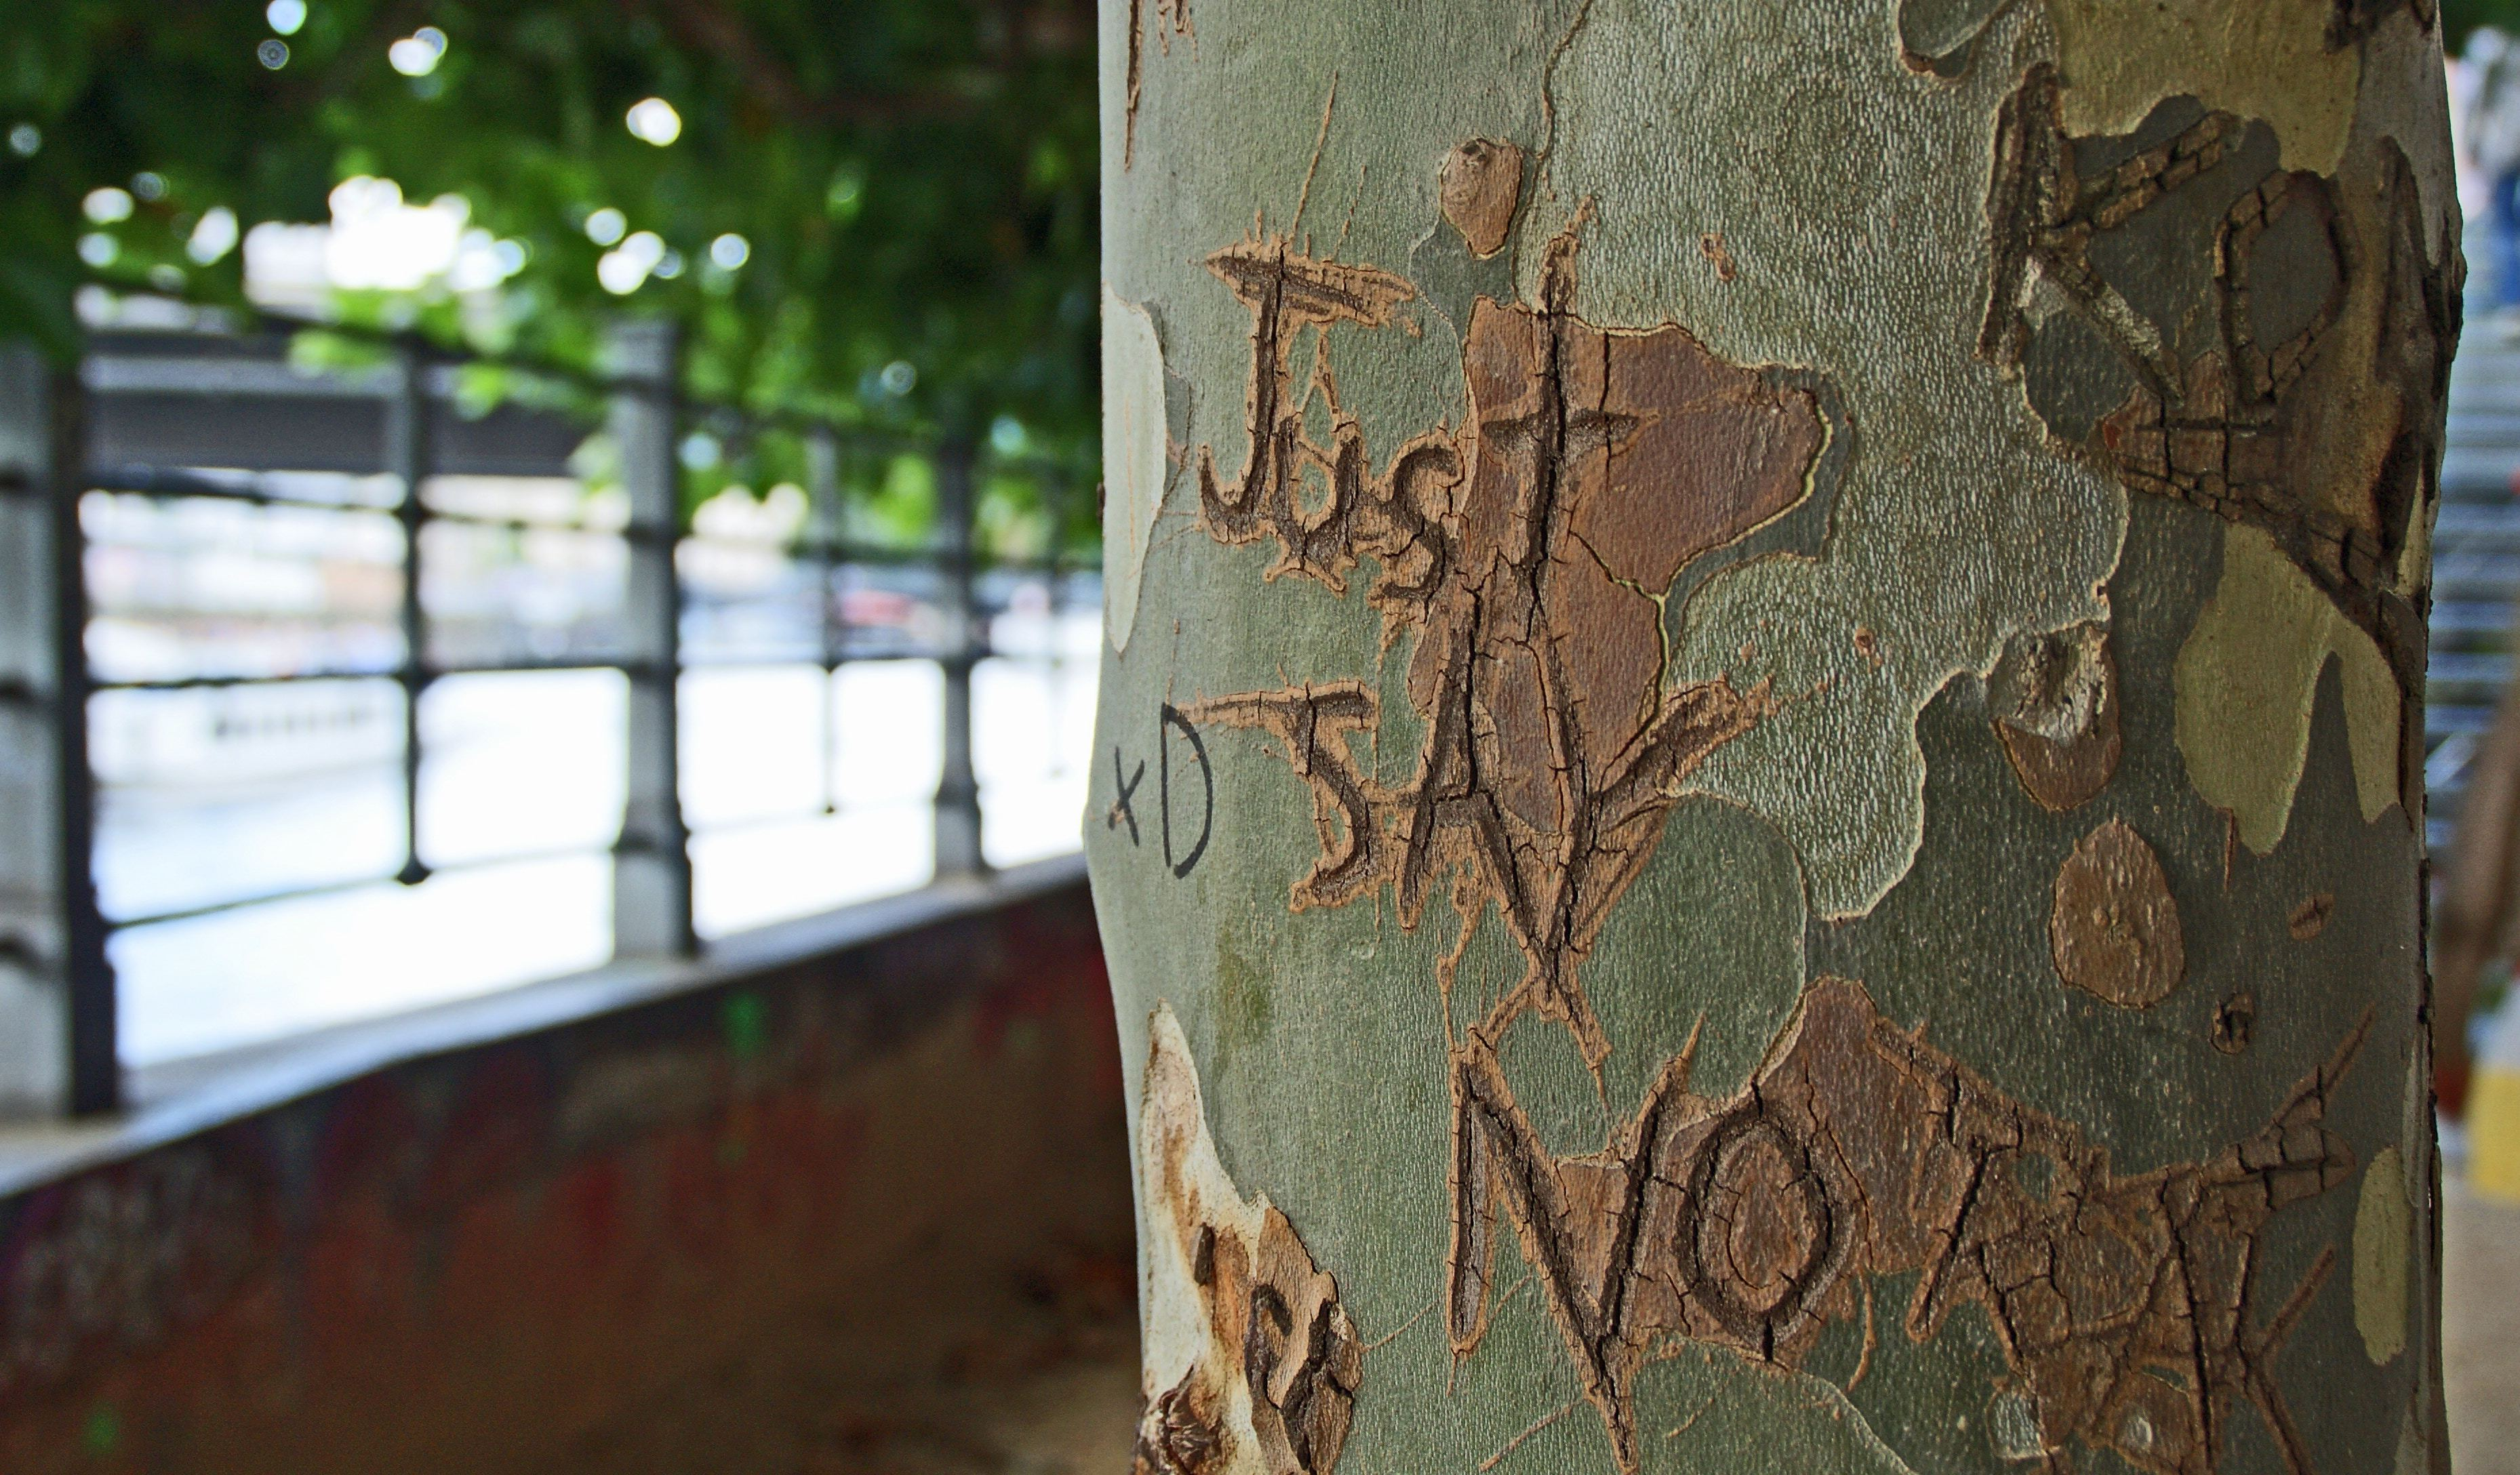 Just say no, carved on a tree